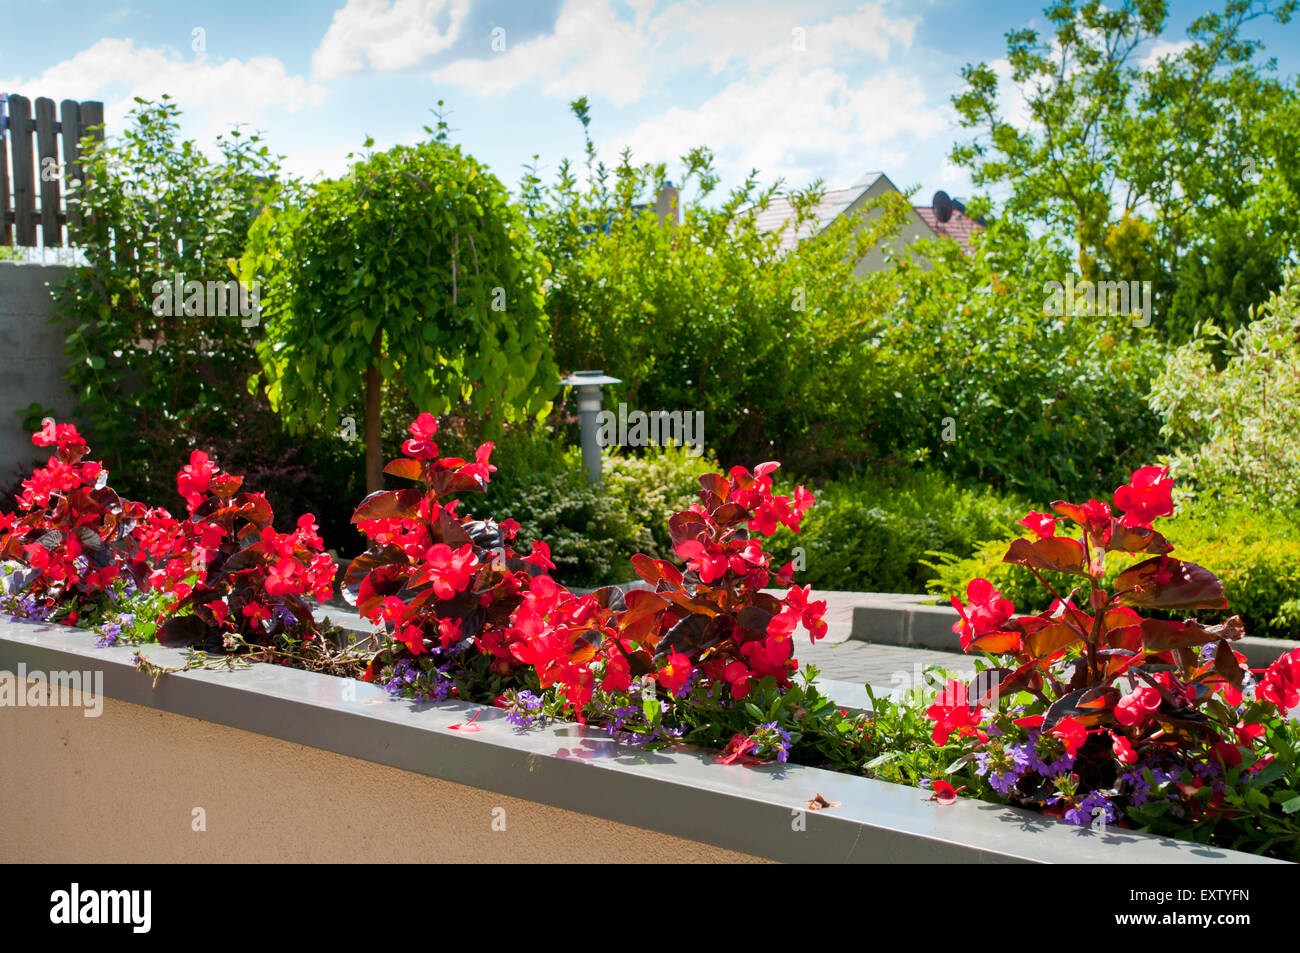 Genial Balcony Building House Flower Flowers Garden City Green Home Europe Sky  Blue Villa White Assos Beautiful Spring Town Mediterrane